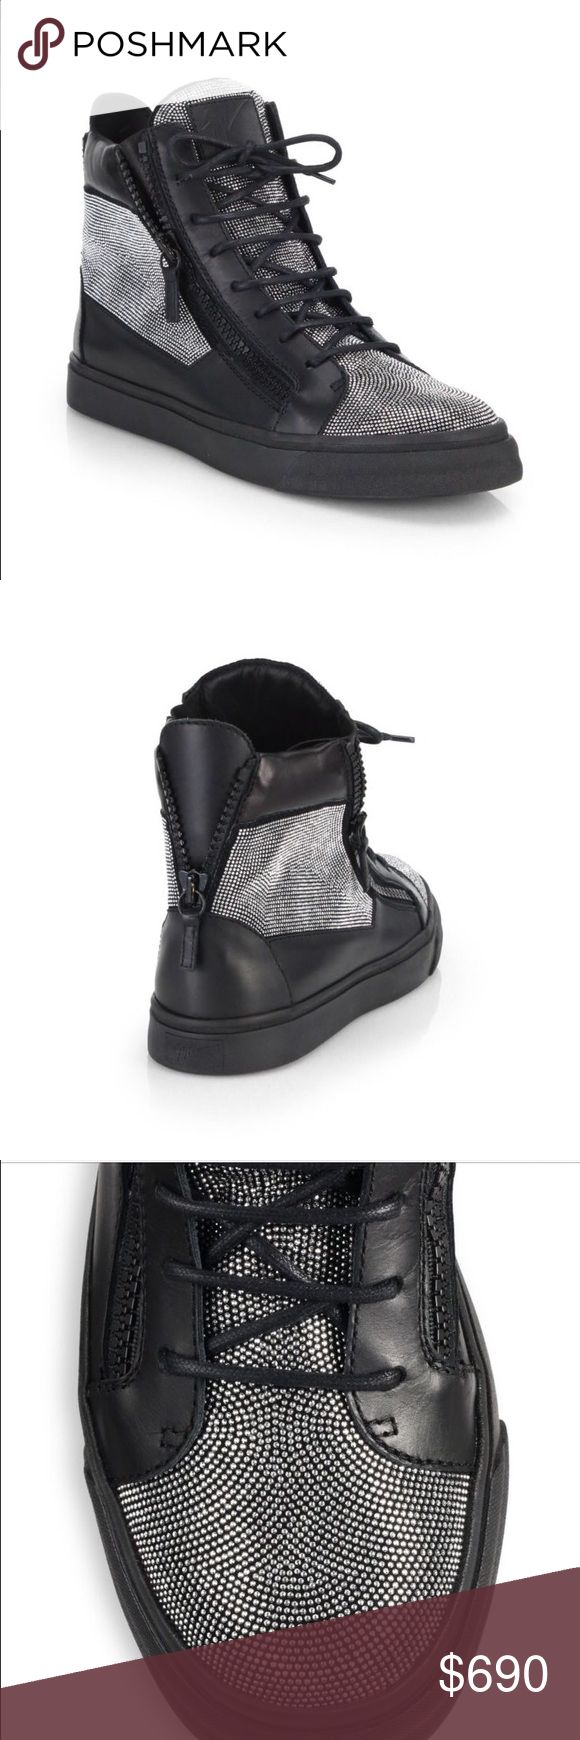 Gorgeous Giuseppe Zanotti high top sneakers If you like fashion, this is a must have. This is an amazing pair that will get you compliments from everyone who see's them on you. Giuseppe Zanotti Shoes Sneakers